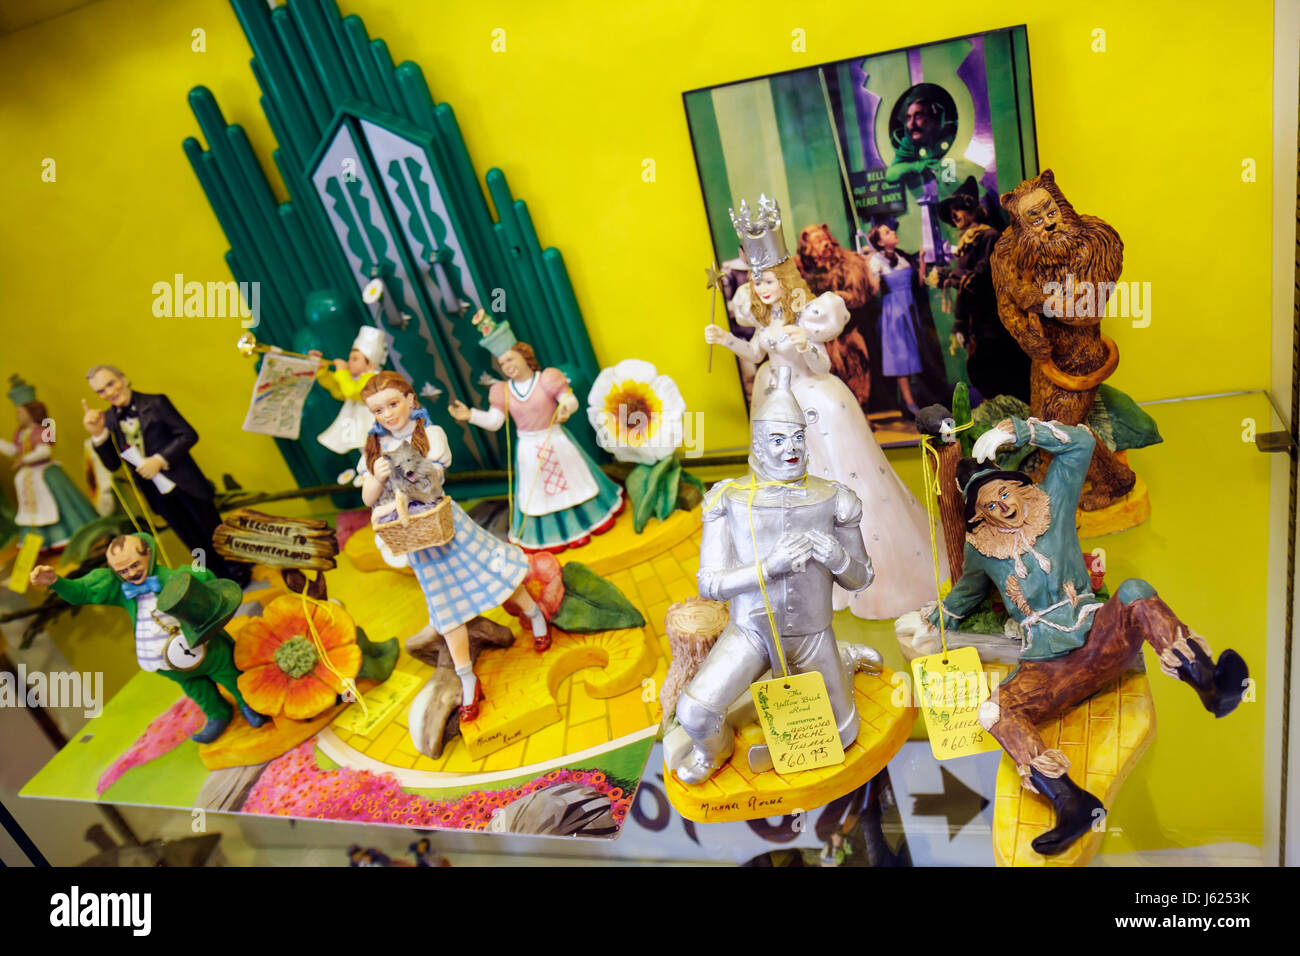 Indiana Chesterton Yellow Brick Road Gift Shop and Wizard of Oz Fantasy Museum figurines collectibles memorabilia Stock Photo